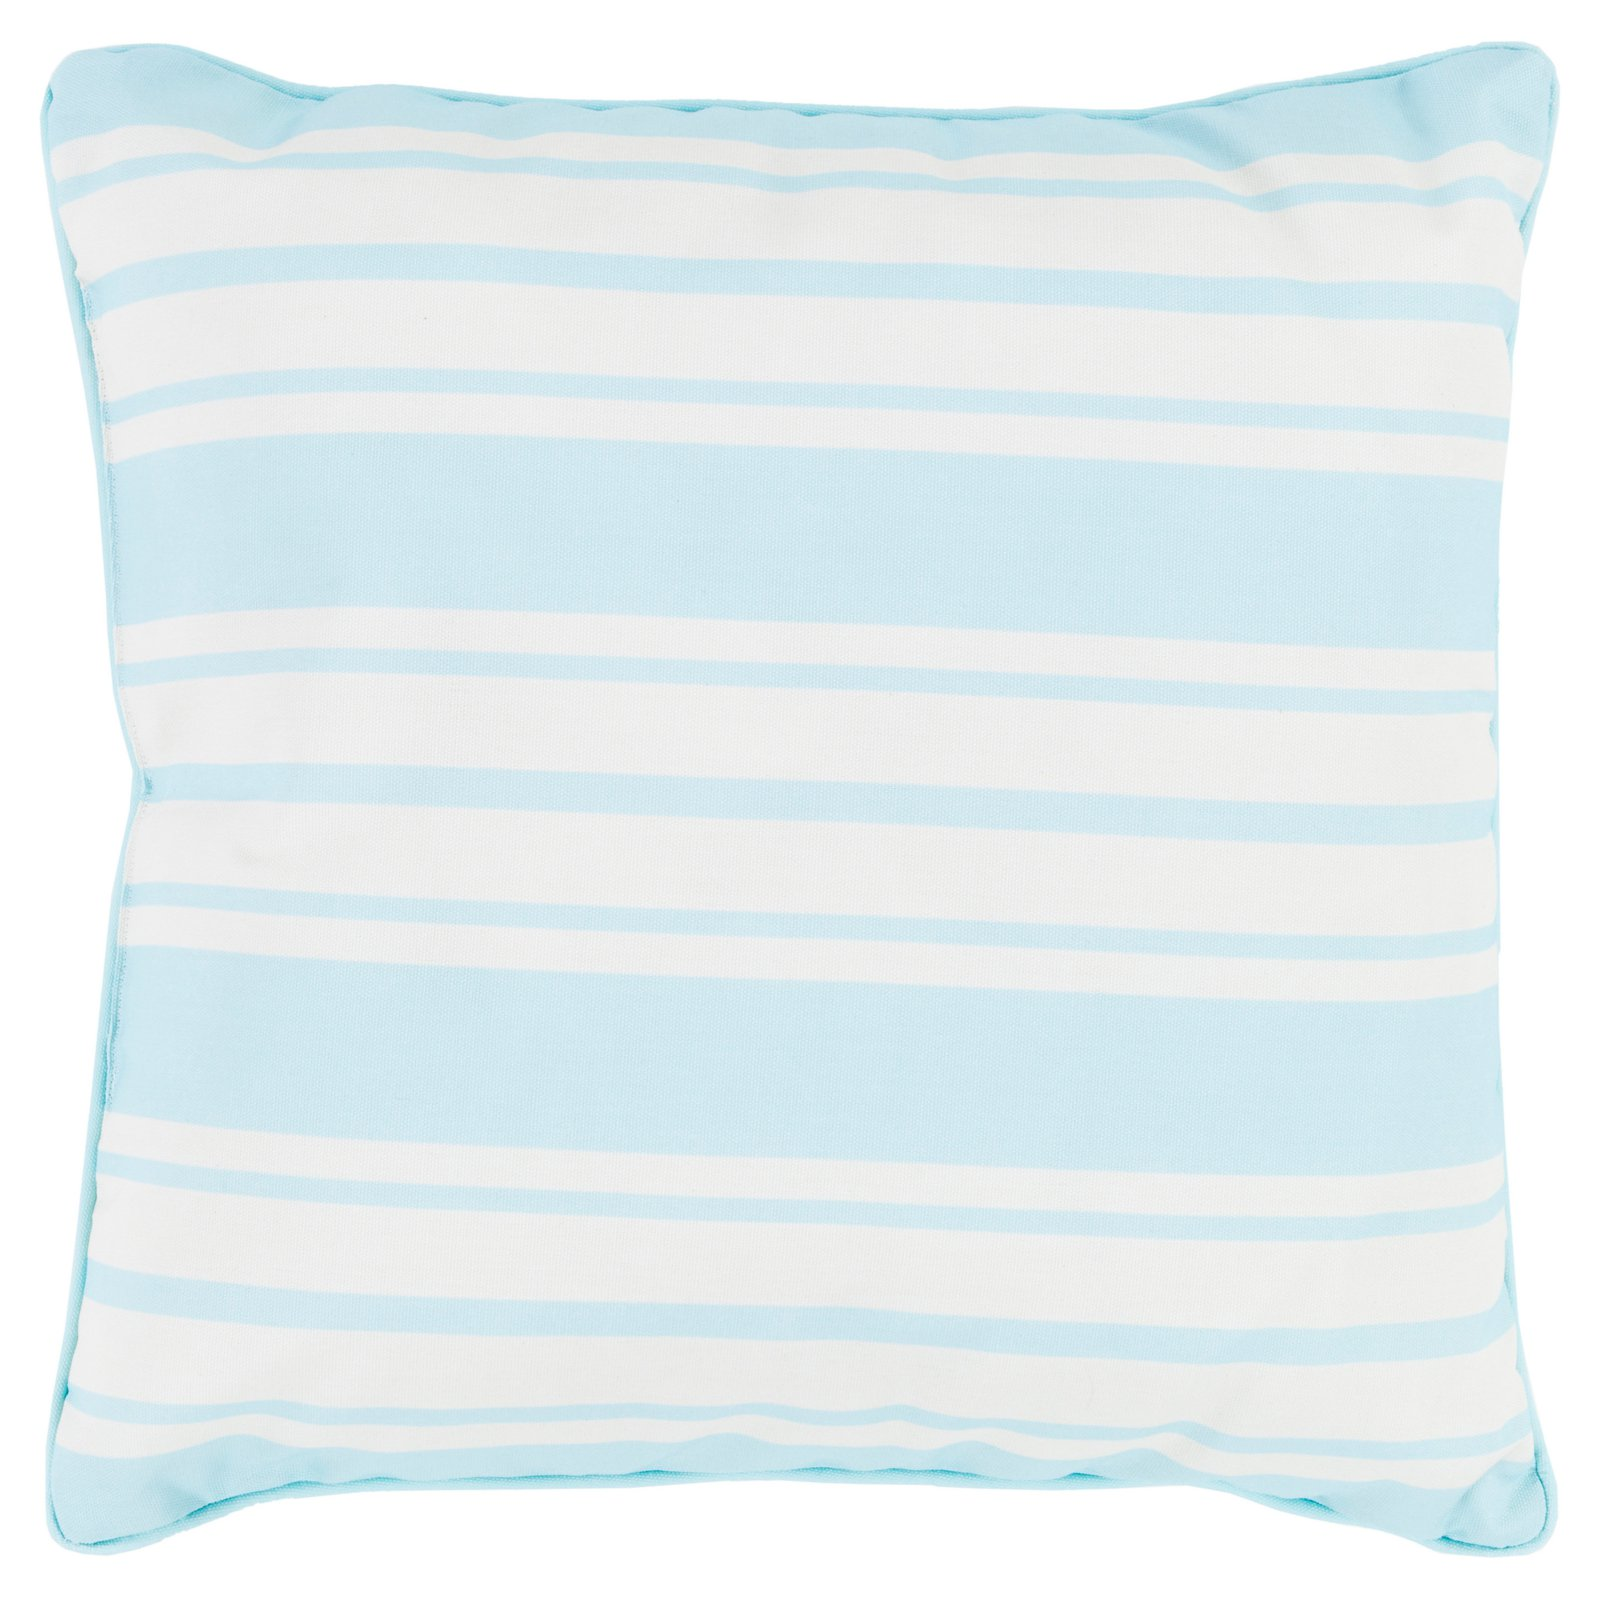 Surya Nautical Stripe Indoor/Outdoor Pillow